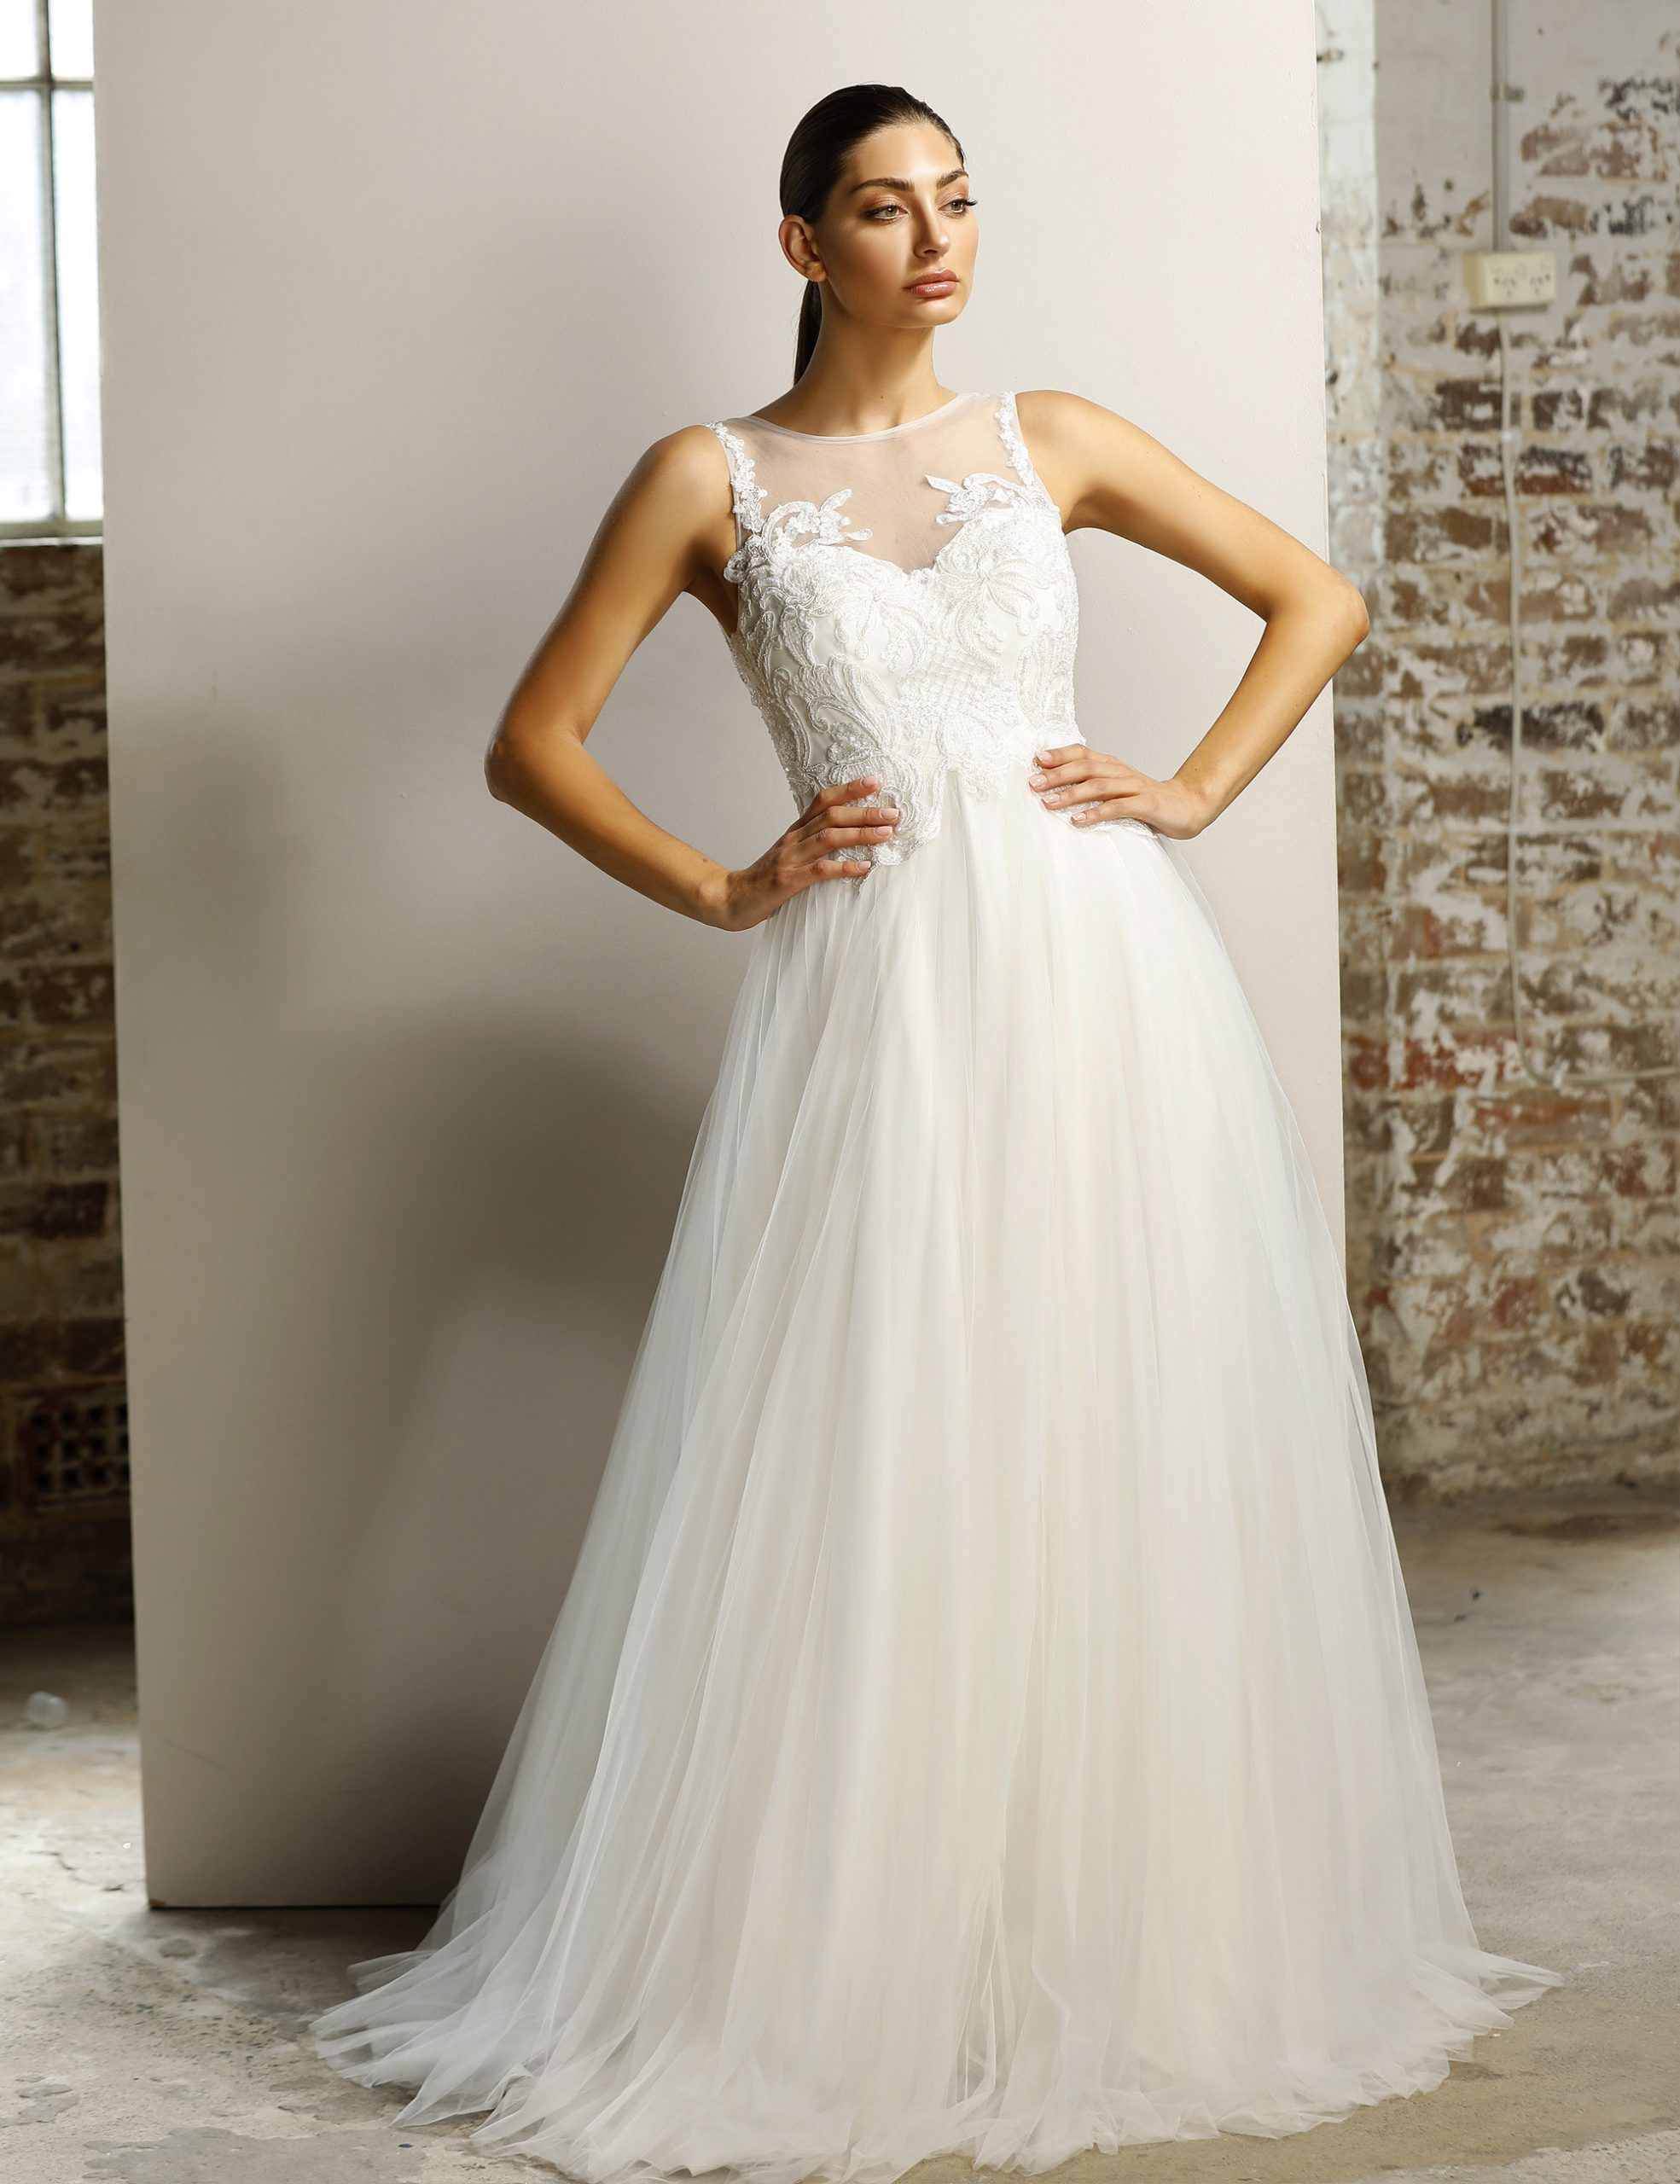 weddingdress20